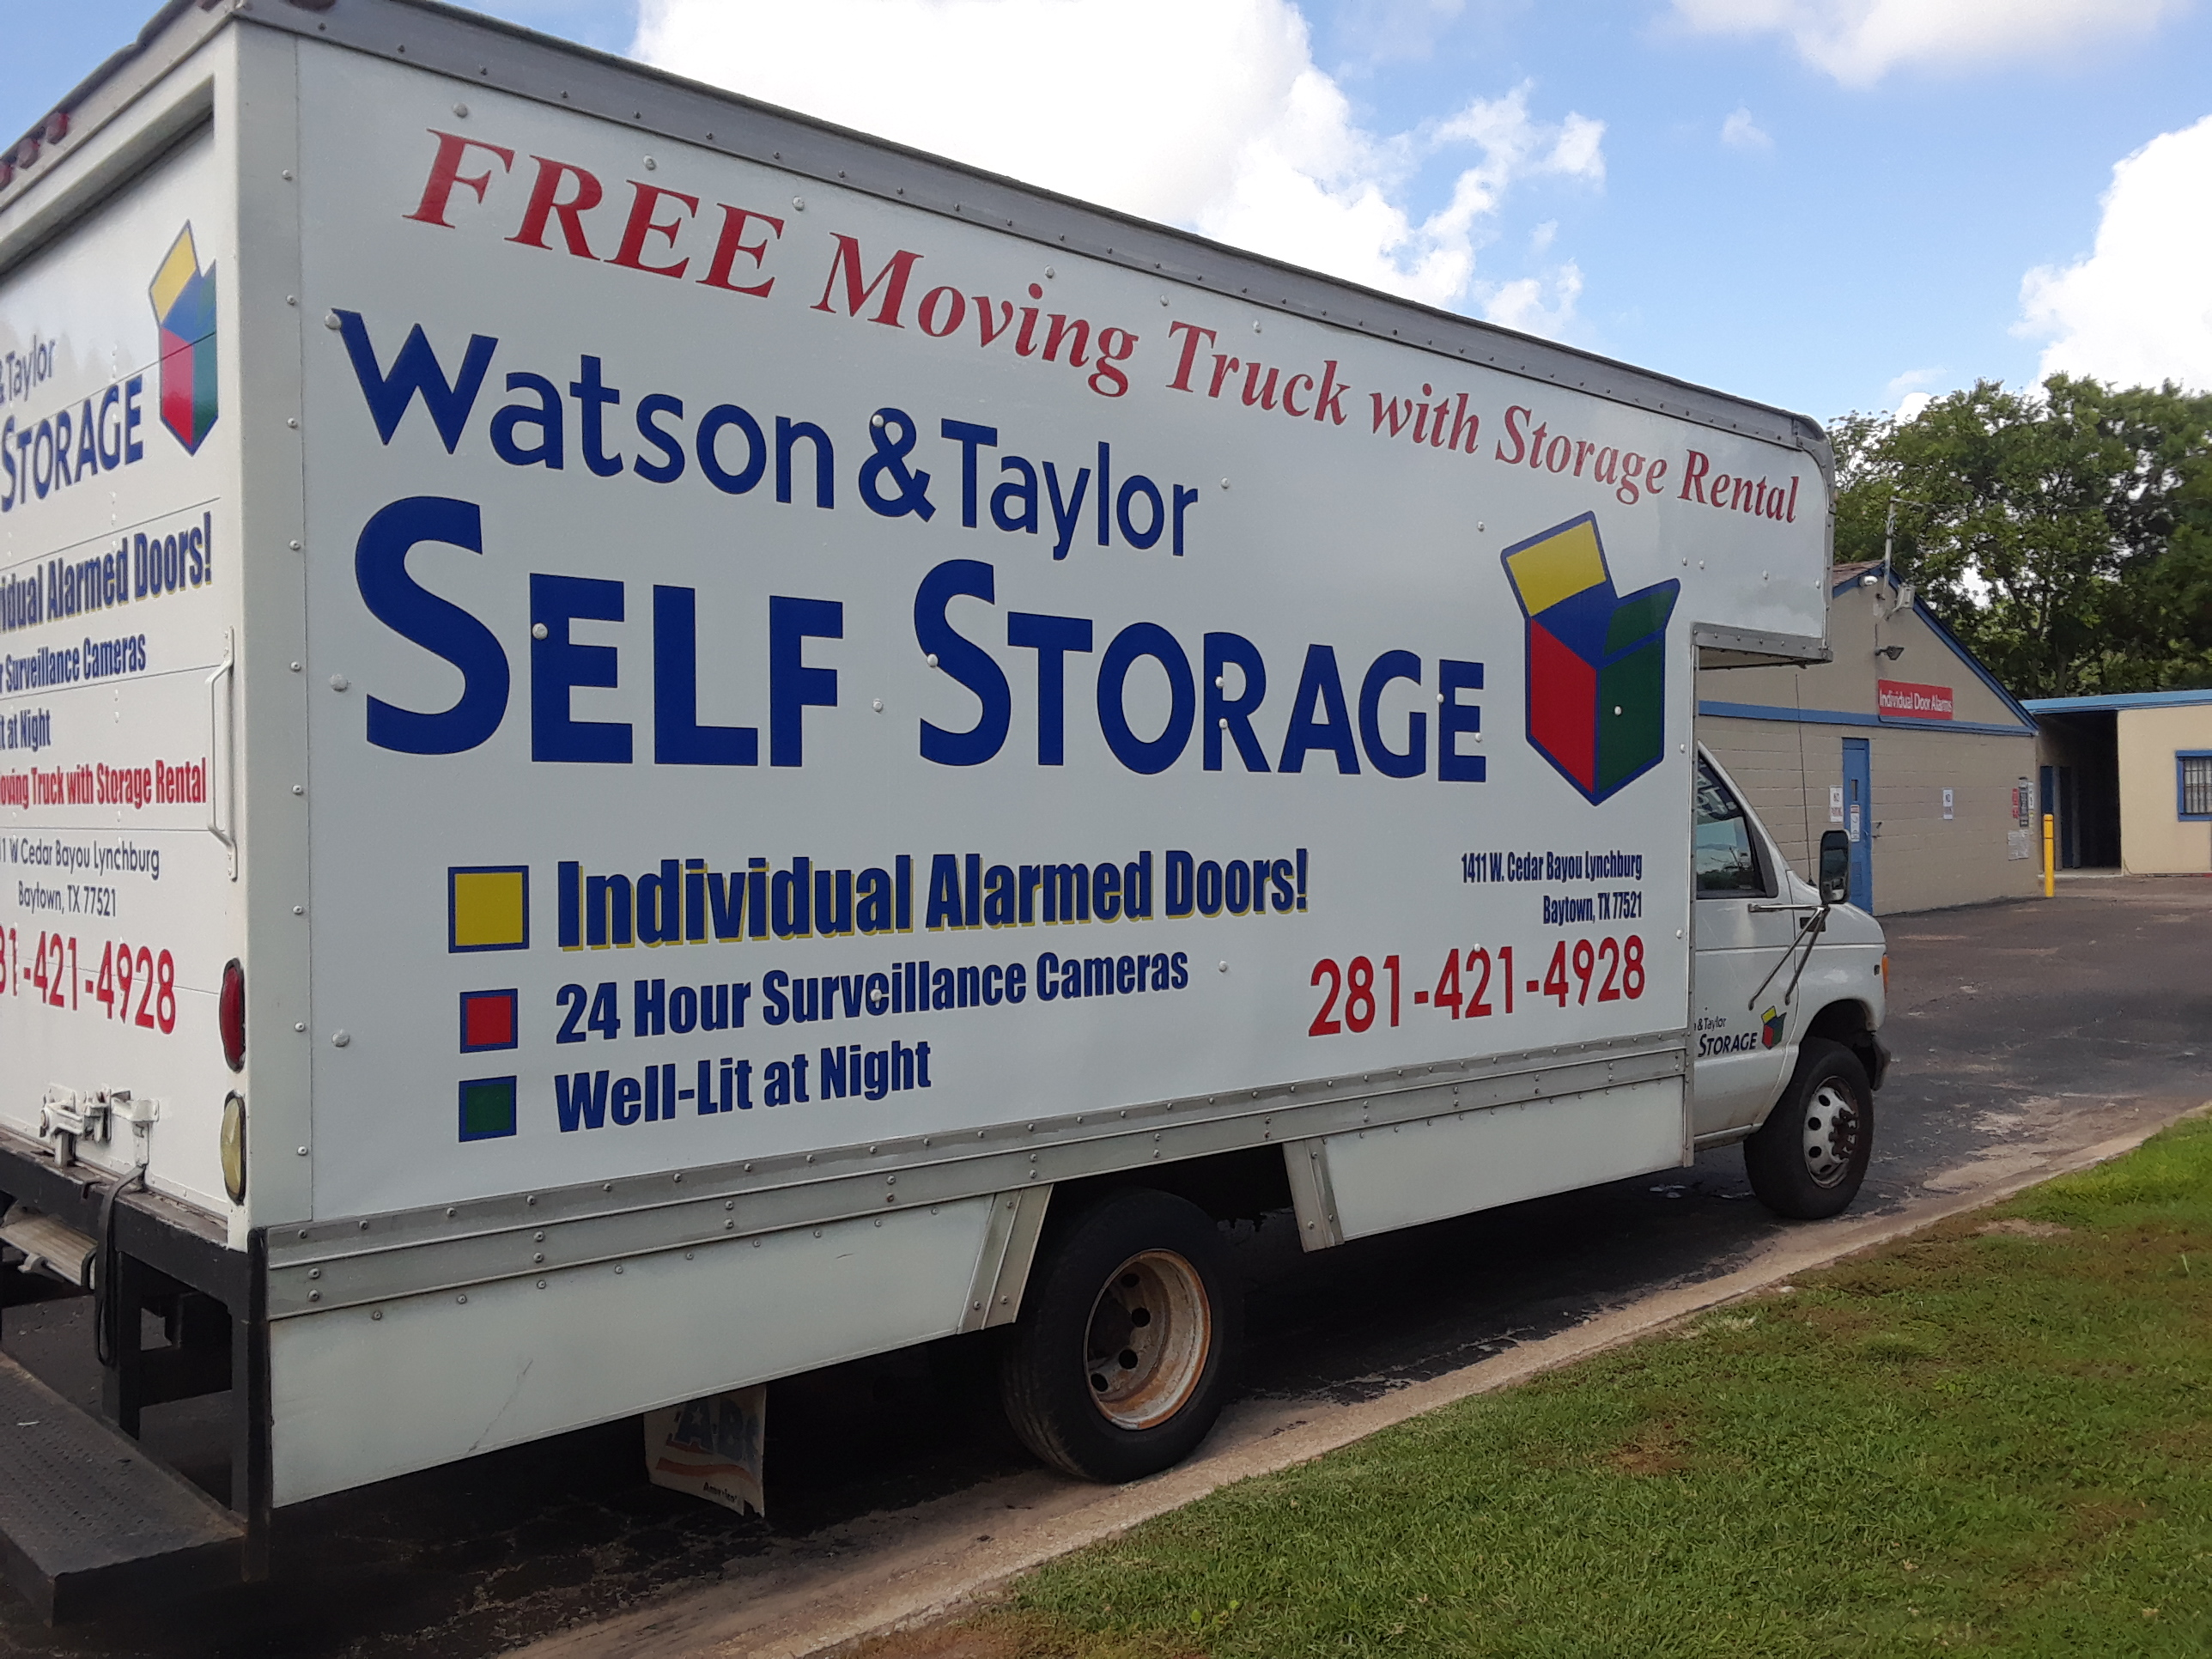 Free Moving Truck